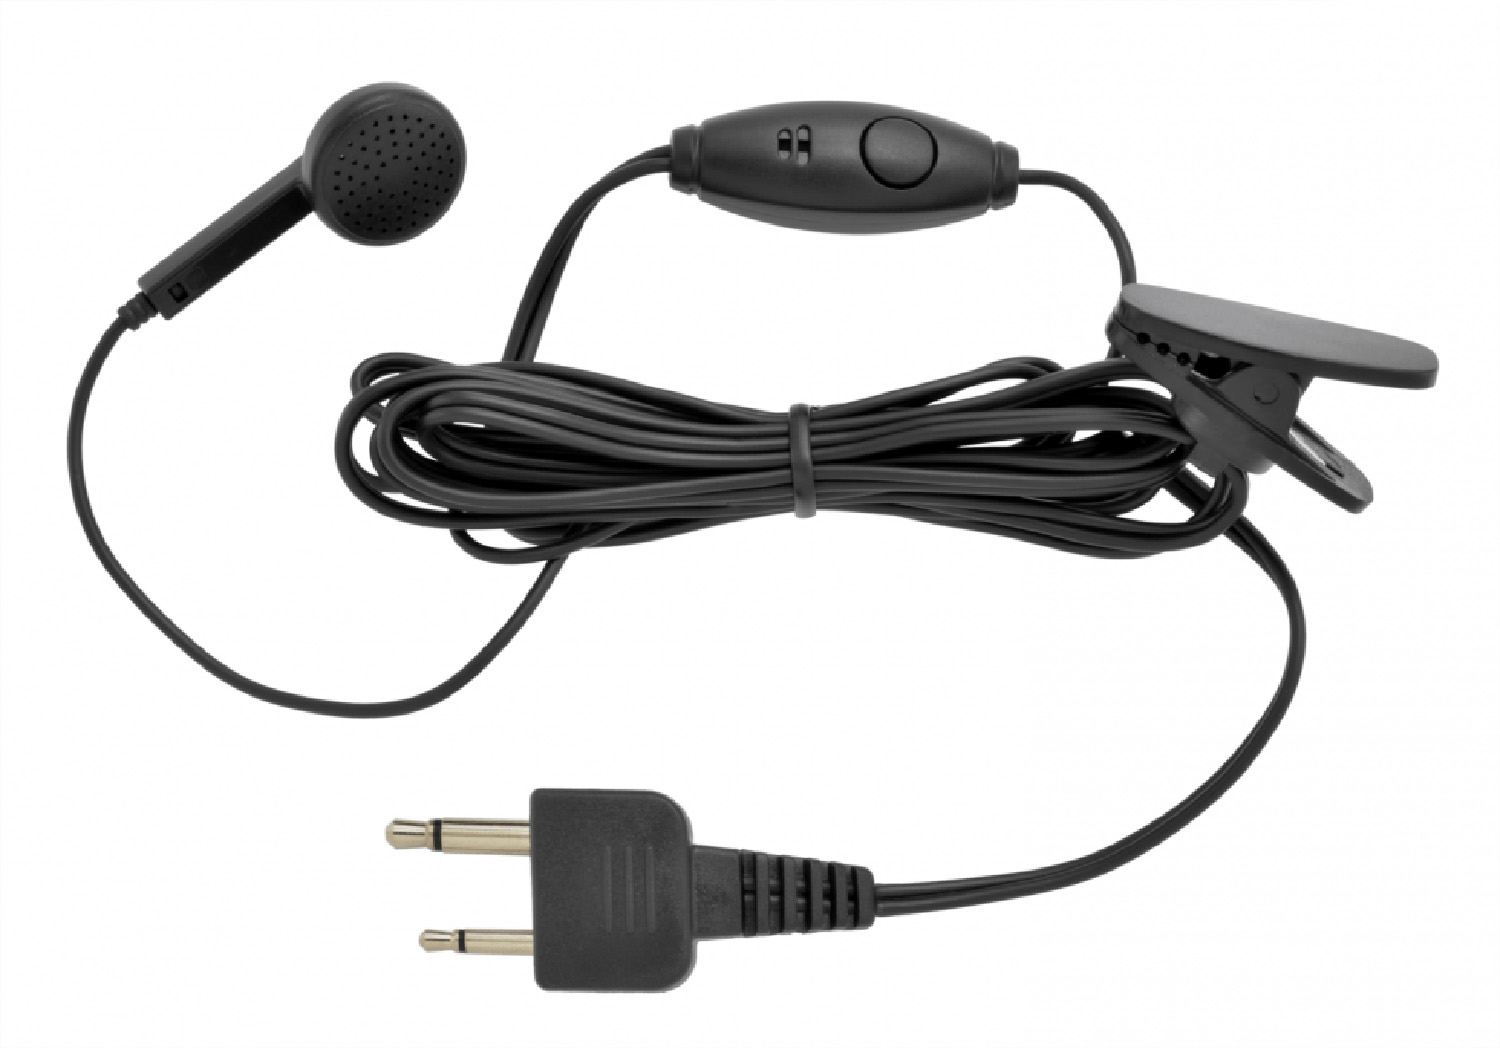 PMREBM - Cobra® Earbud Microphone for the HH38WXST & HH50WXST Handheld CB Radios